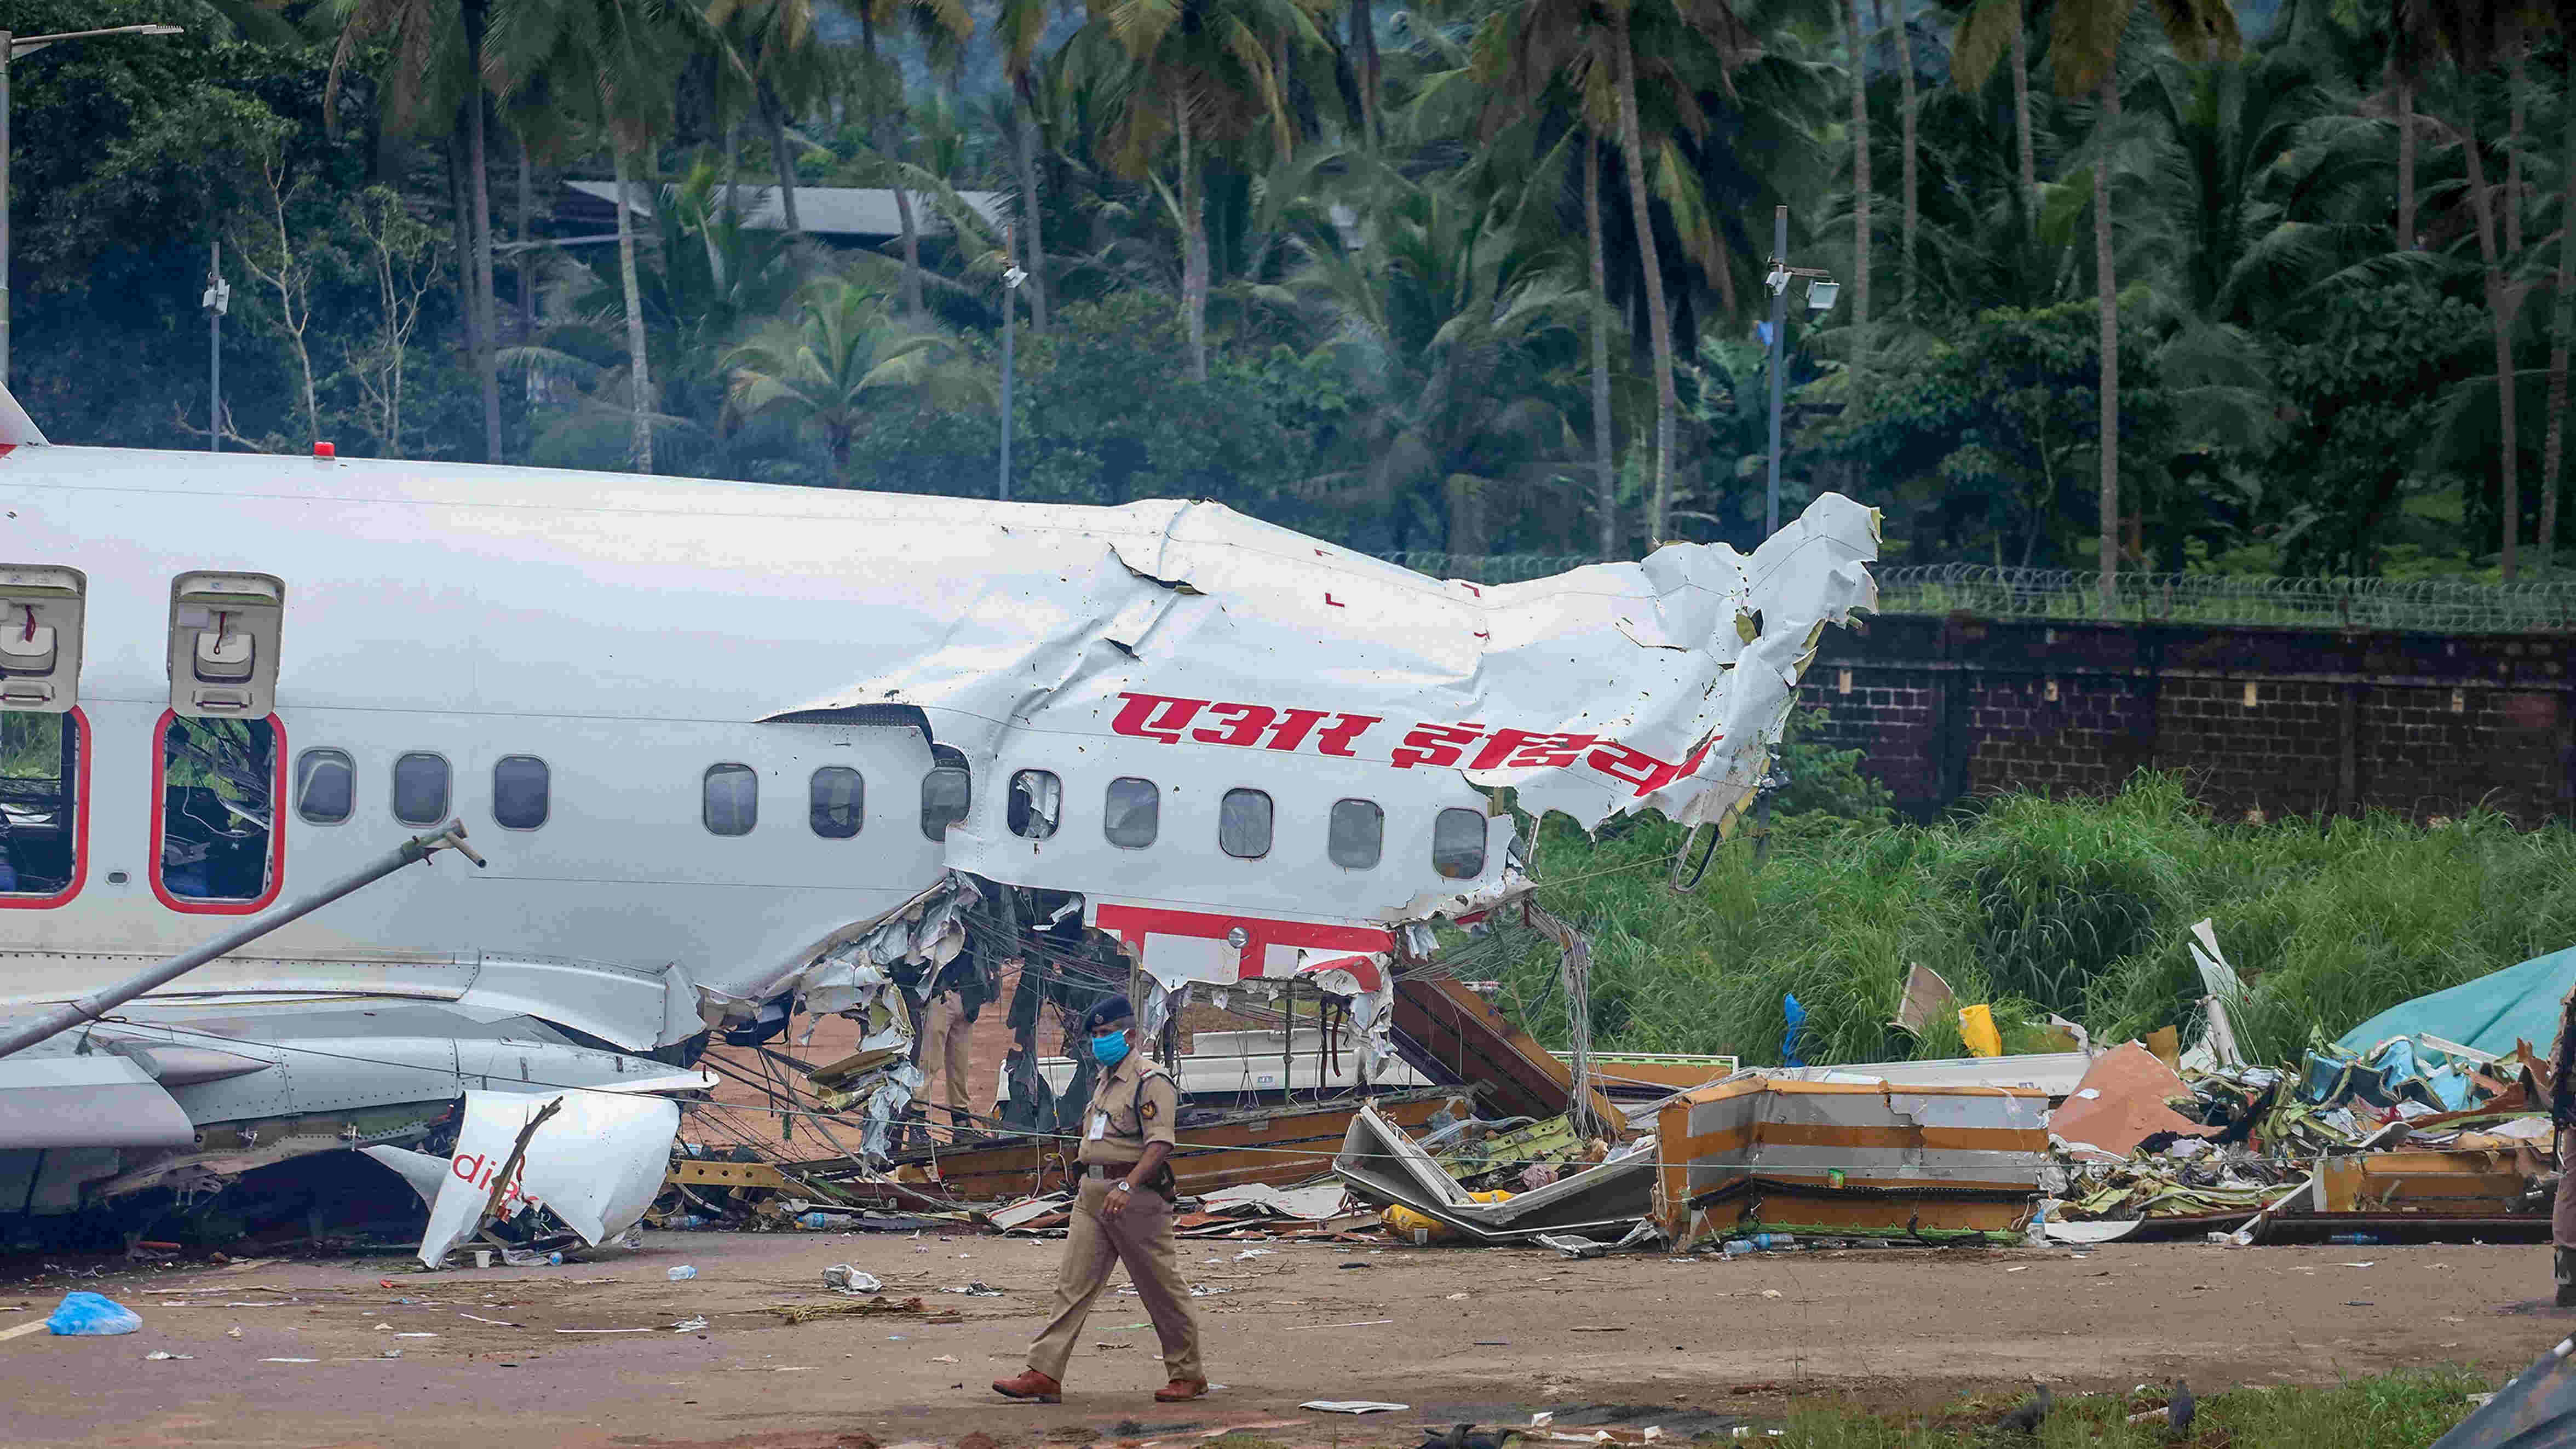 Mangled remains of an Air India Express flight, en route from Dubai, after it skidded off the runway while landing on Friday night, at Karippur in Kozhikode.